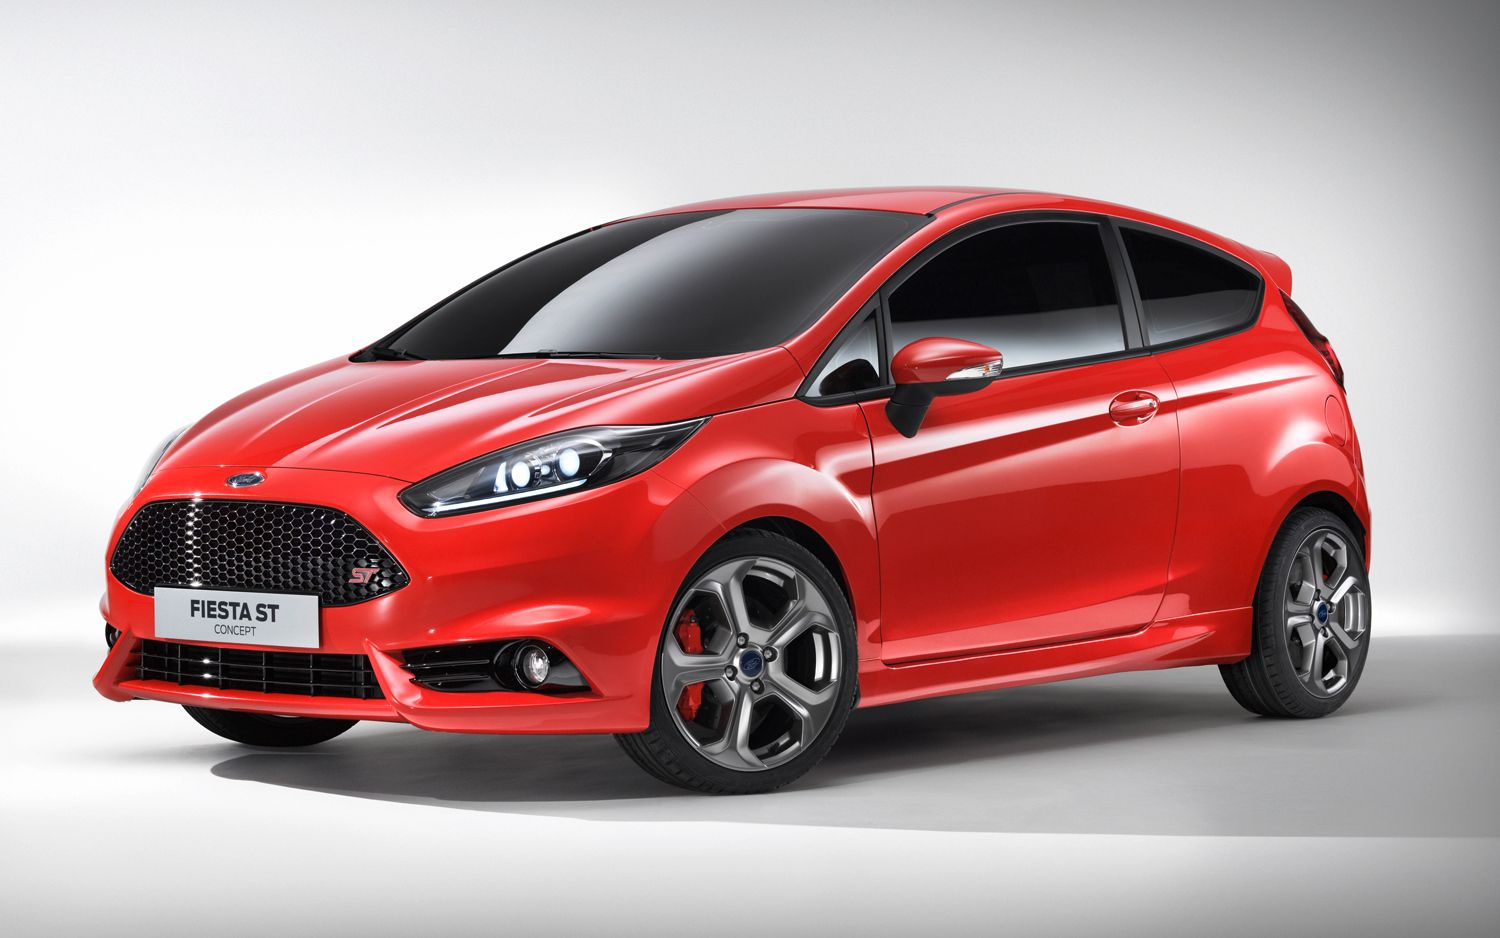 2014 ford fiesta st all about cars. Black Bedroom Furniture Sets. Home Design Ideas